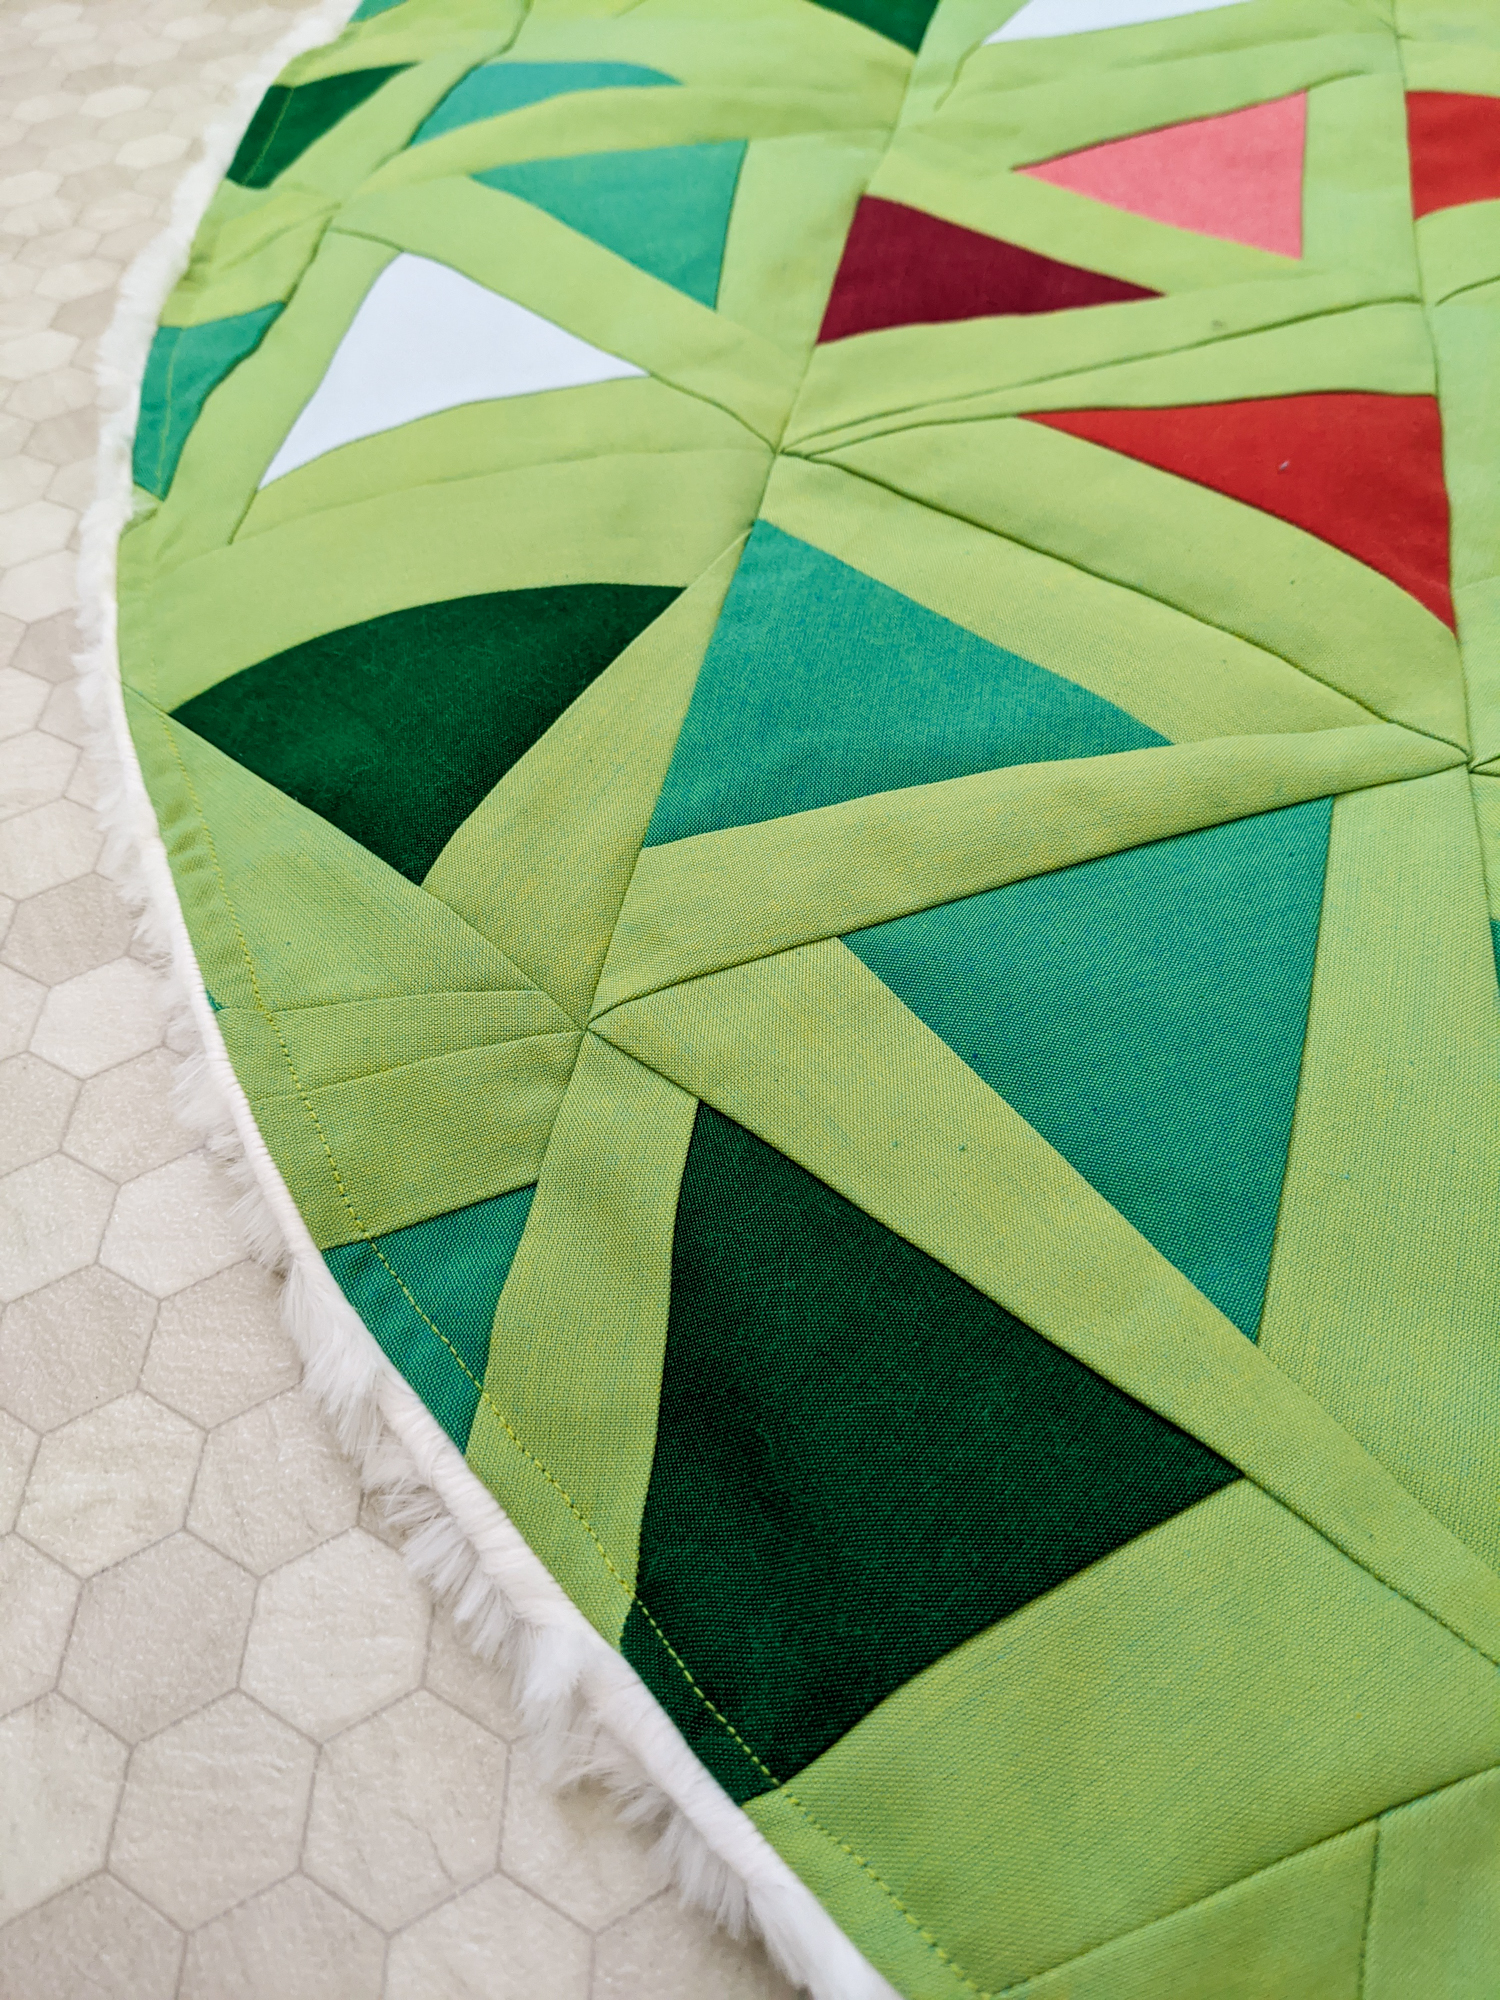 This DIY Patchwork Tree Skirt tutorial walks you through sewing a Christmas tree skirt based on the Perennial Quilt Pattern by Suzy Quilts